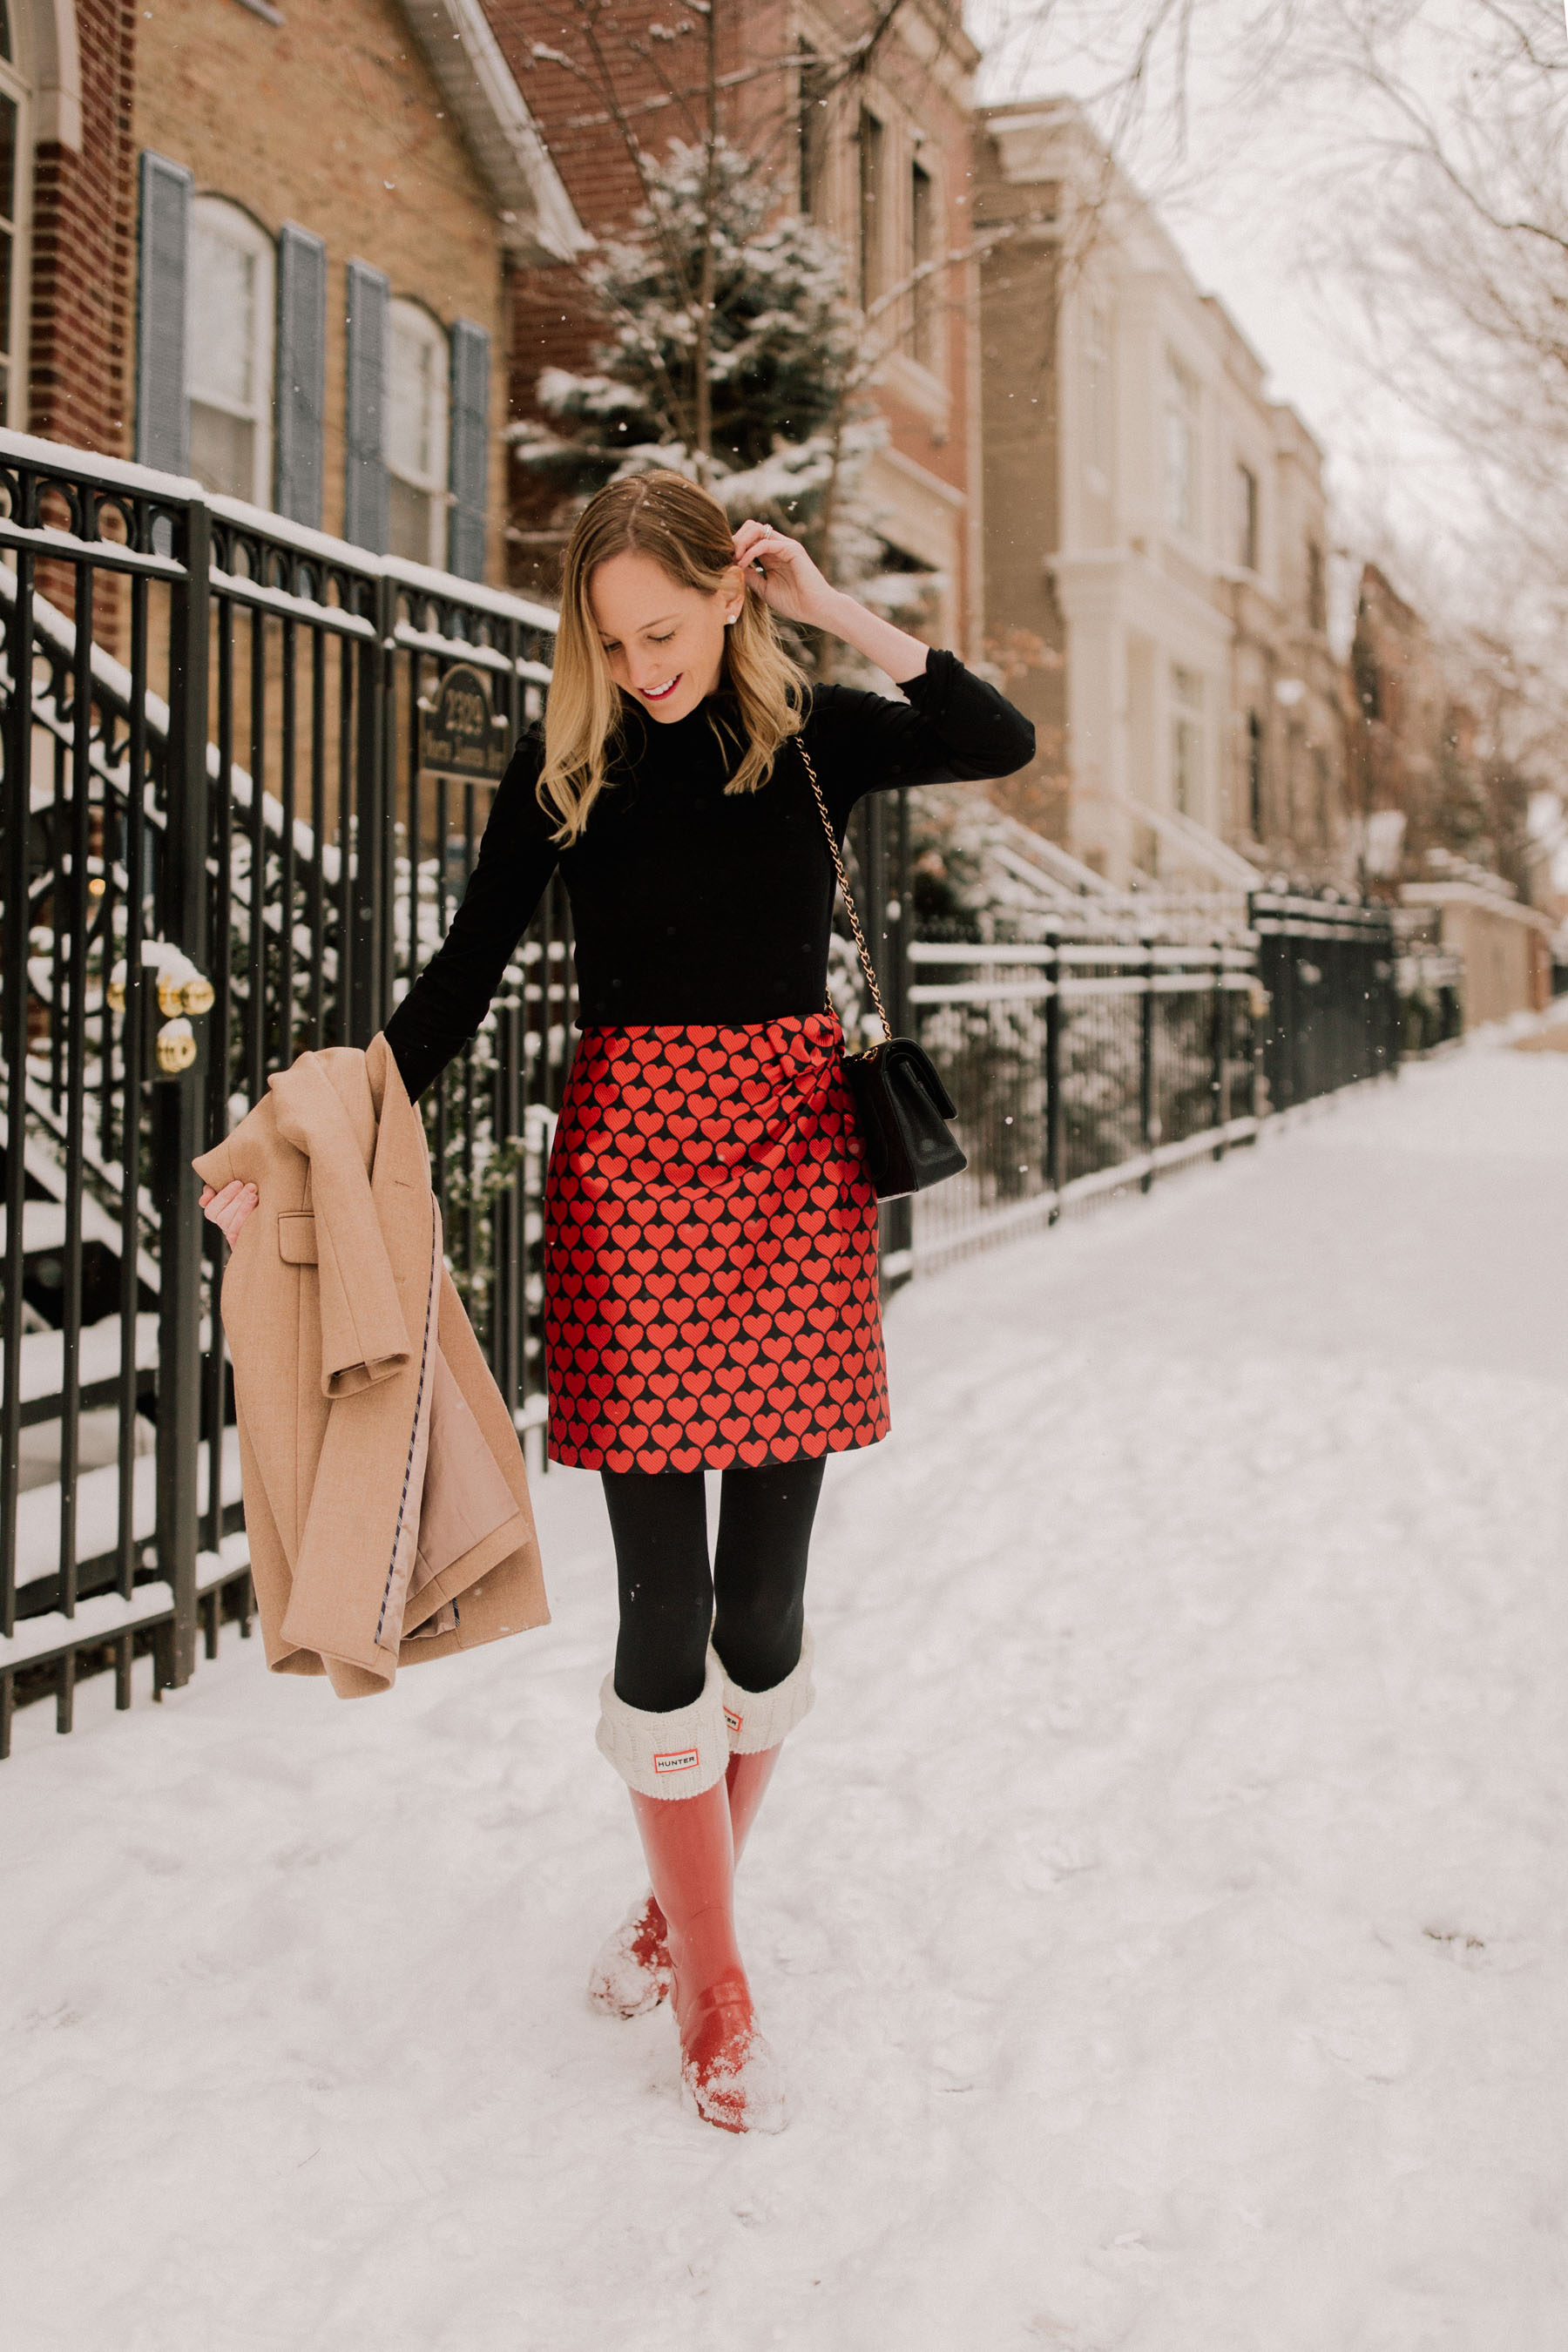 Valentine's Day Outfit - Kelly in the City